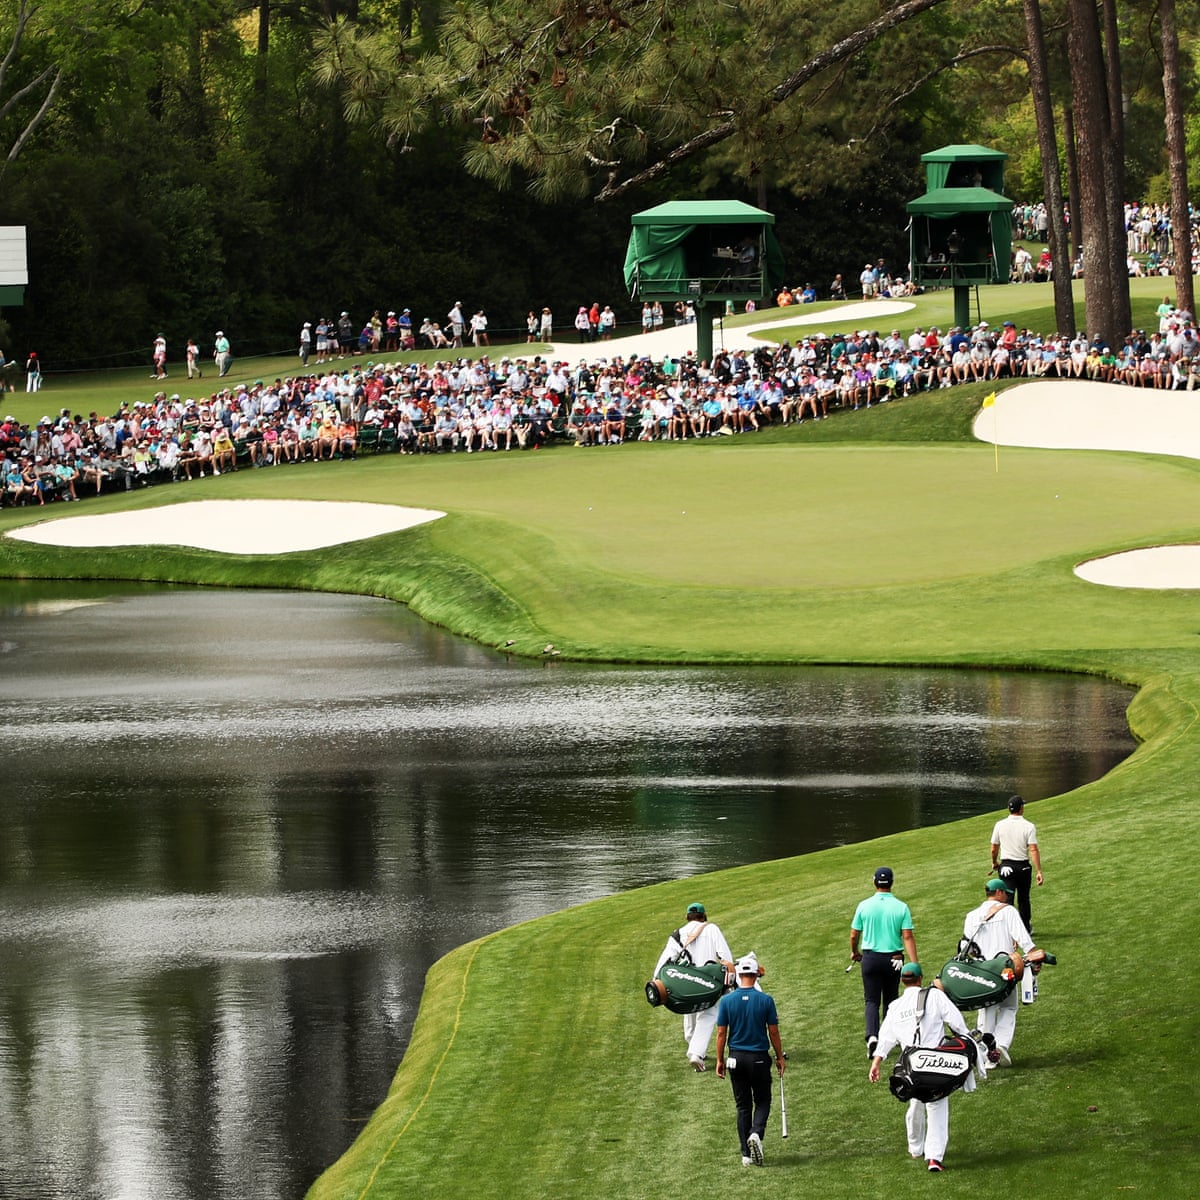 Autumn Masters In Augusta S Sights After Coronavirus Forces Postponement The Masters The Guardian